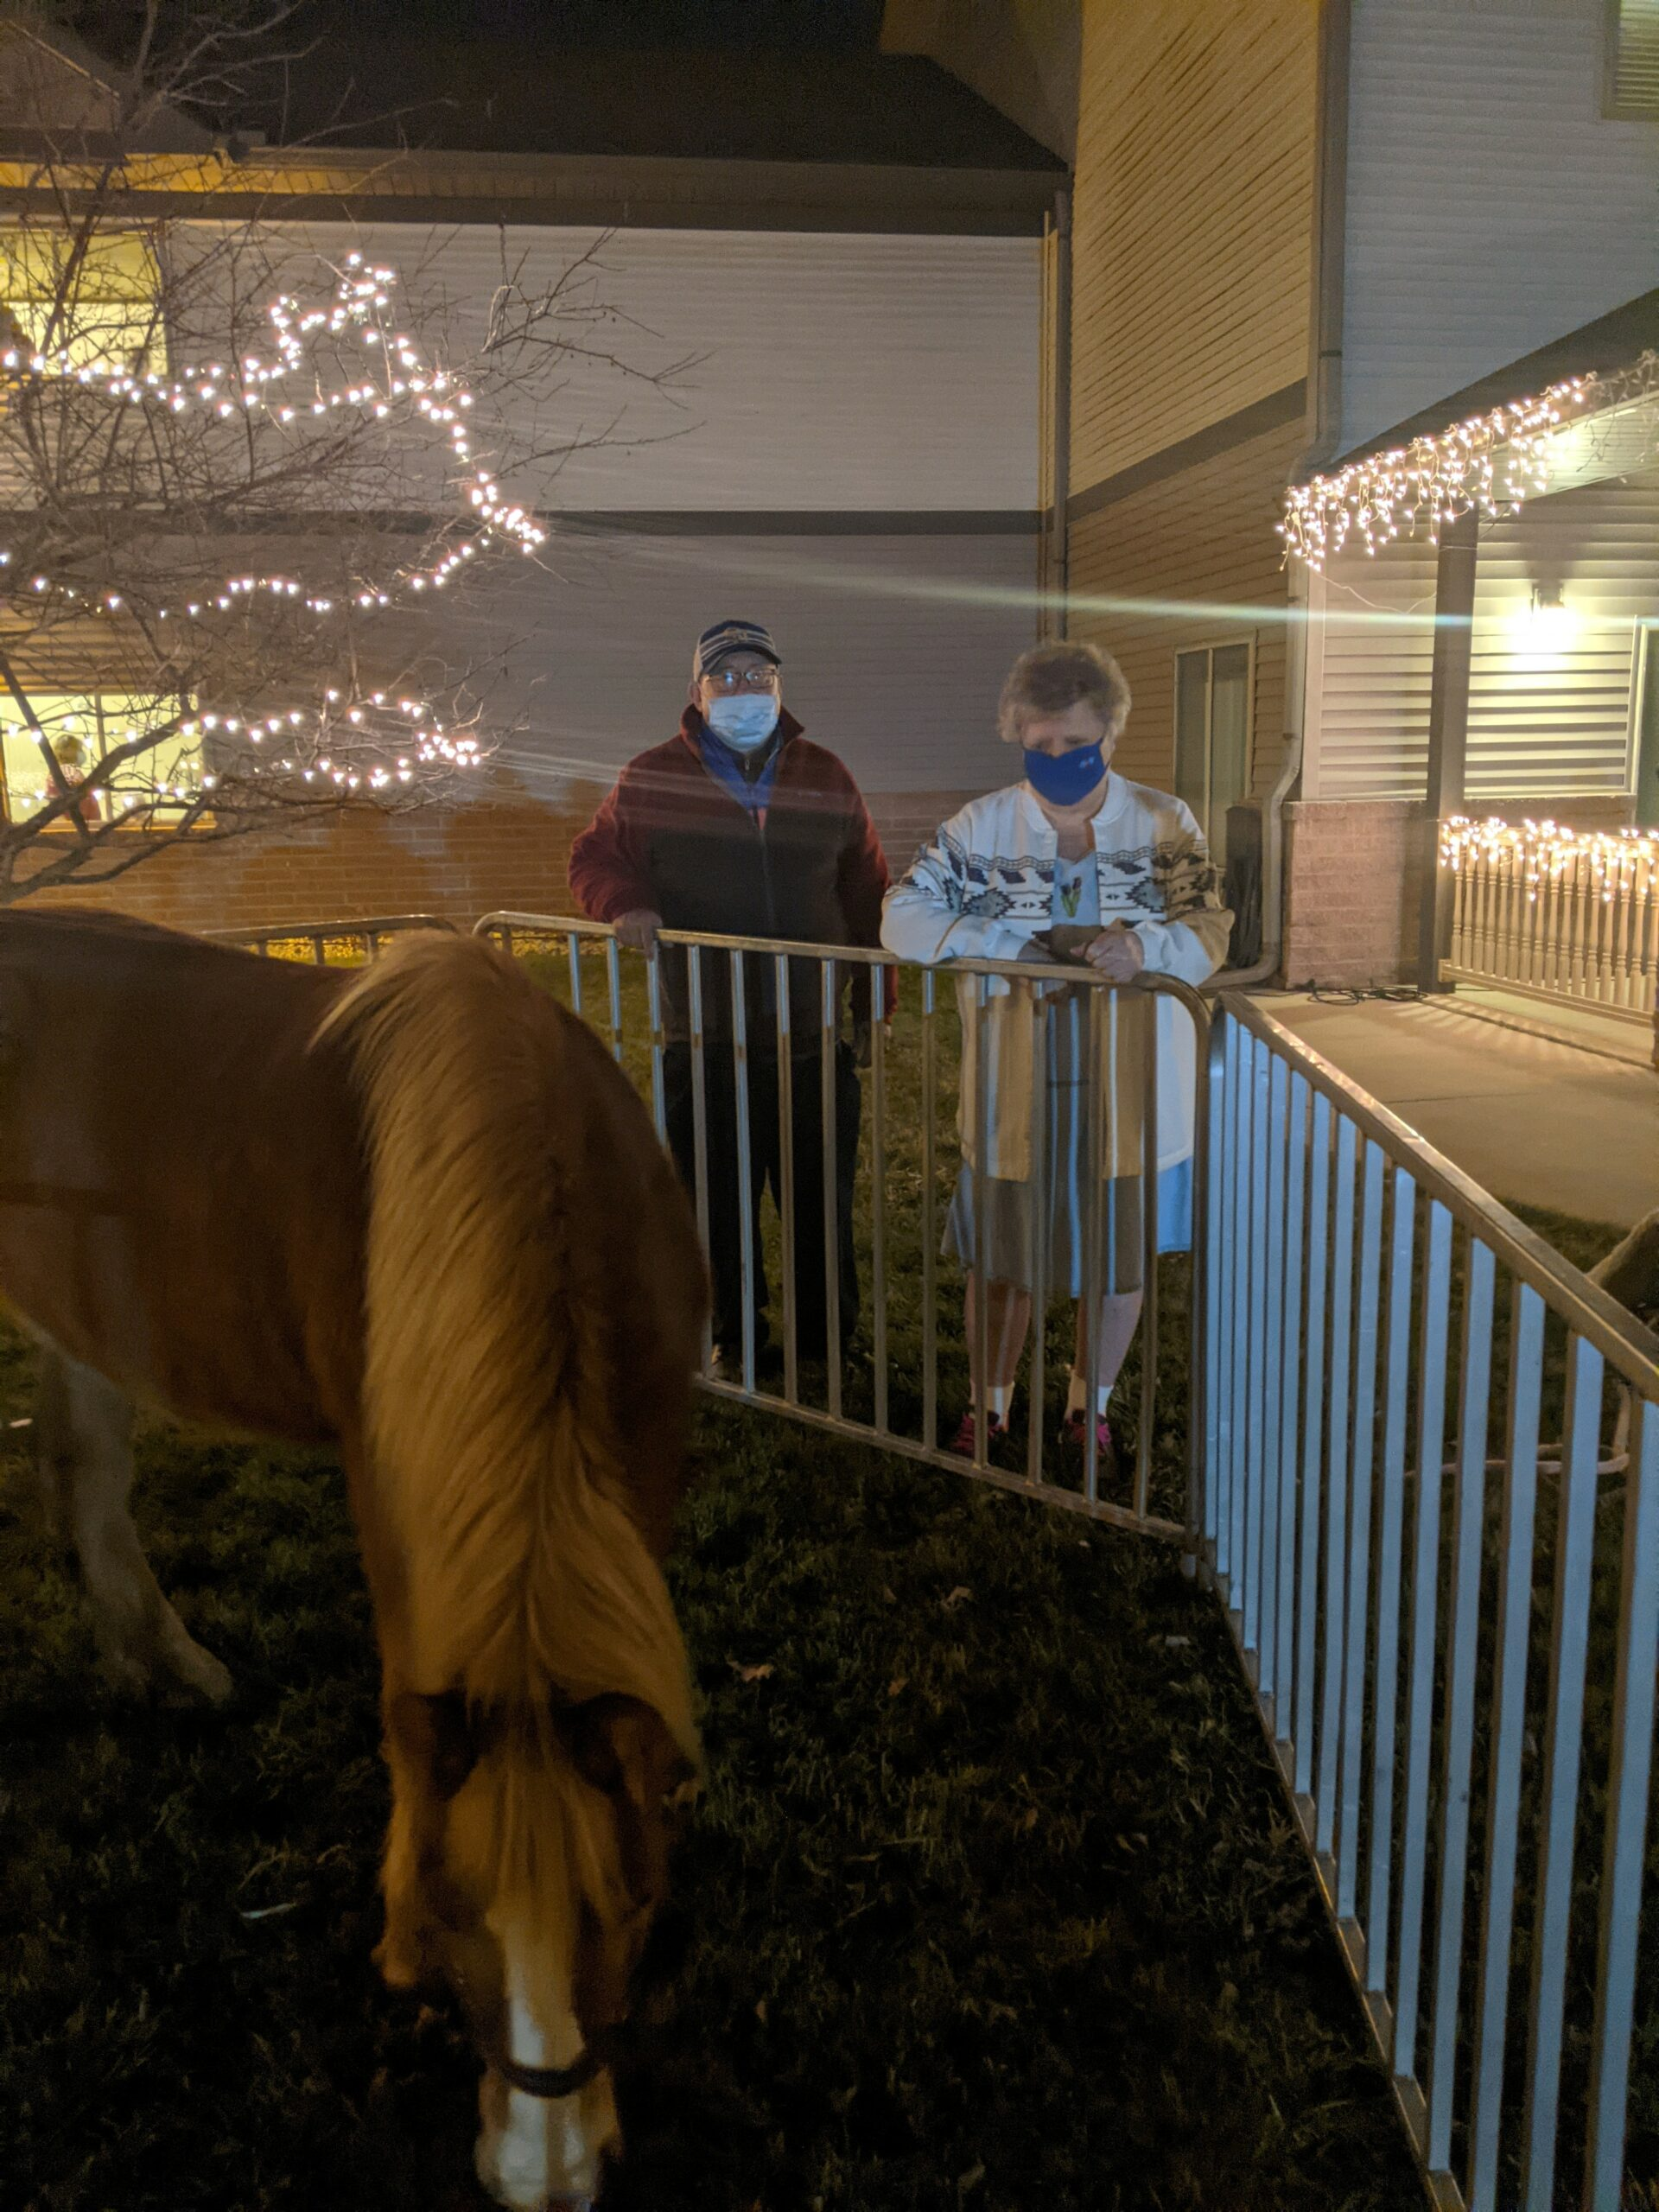 Rachel and Dave were checking out the horse at the Live Nativity that Primrose of Lima had.